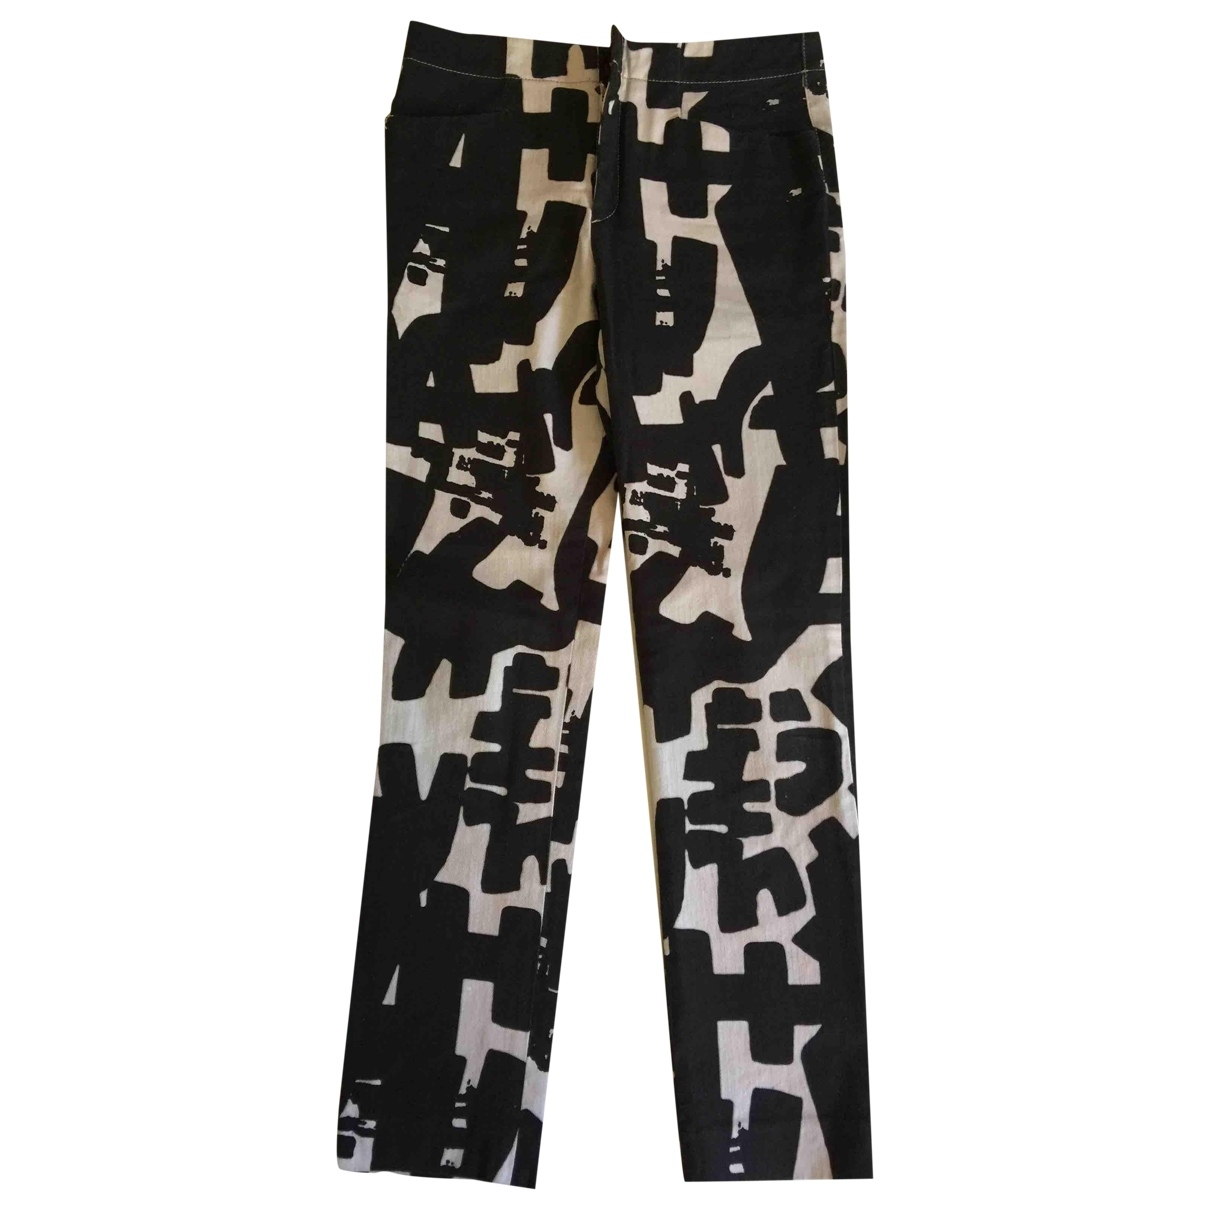 Isabel Marant \N Black Cotton Trousers for Women 34 FR